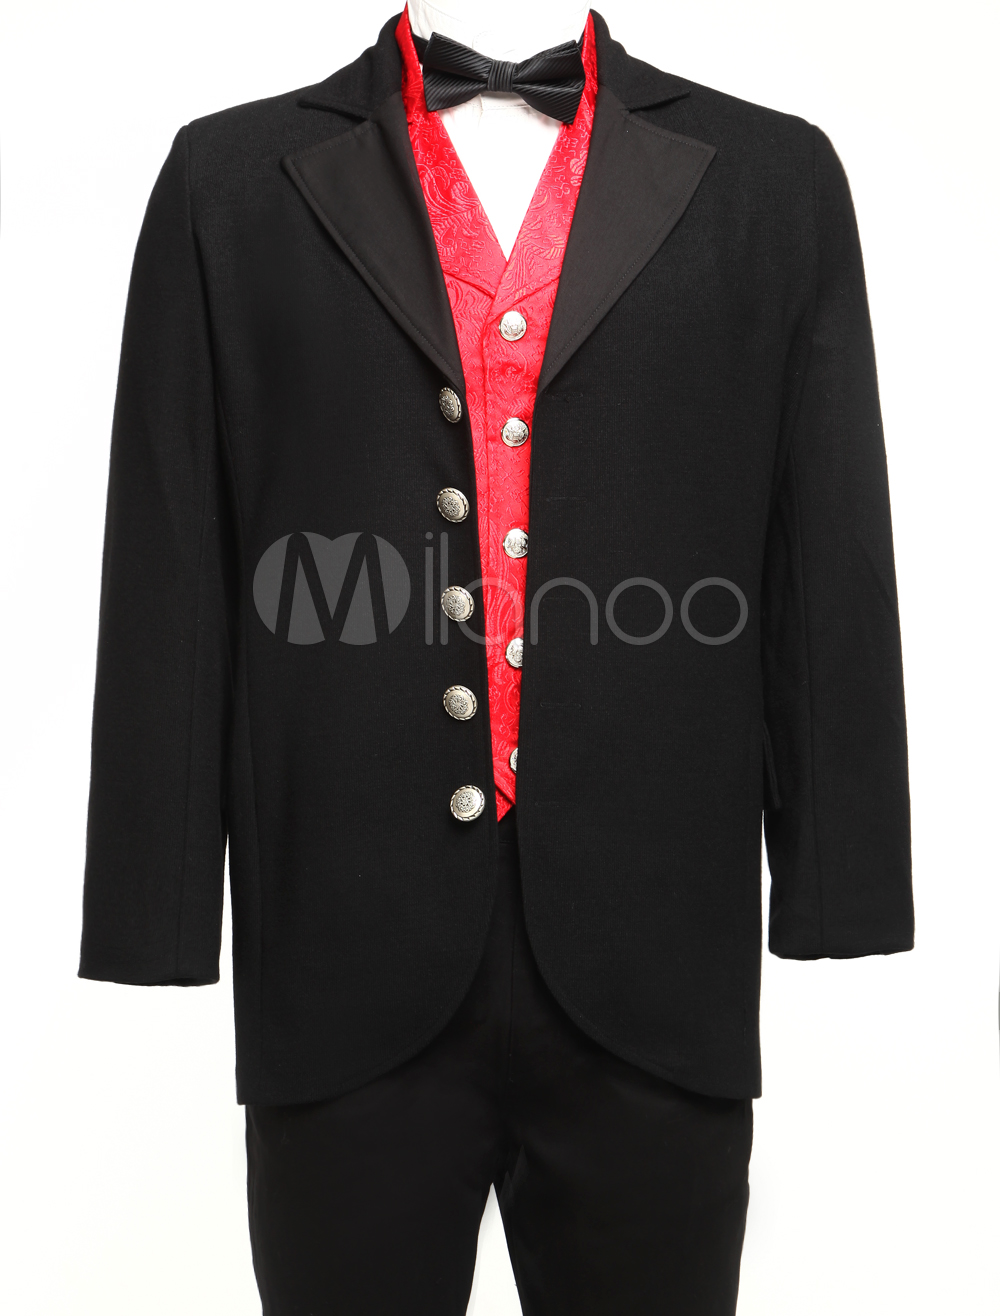 Fabulous Black Lapel Buttons Jazz Cloth Velvet Trim Mens Full Length Steampunk Coat $74.99 AT vintagedancer.com